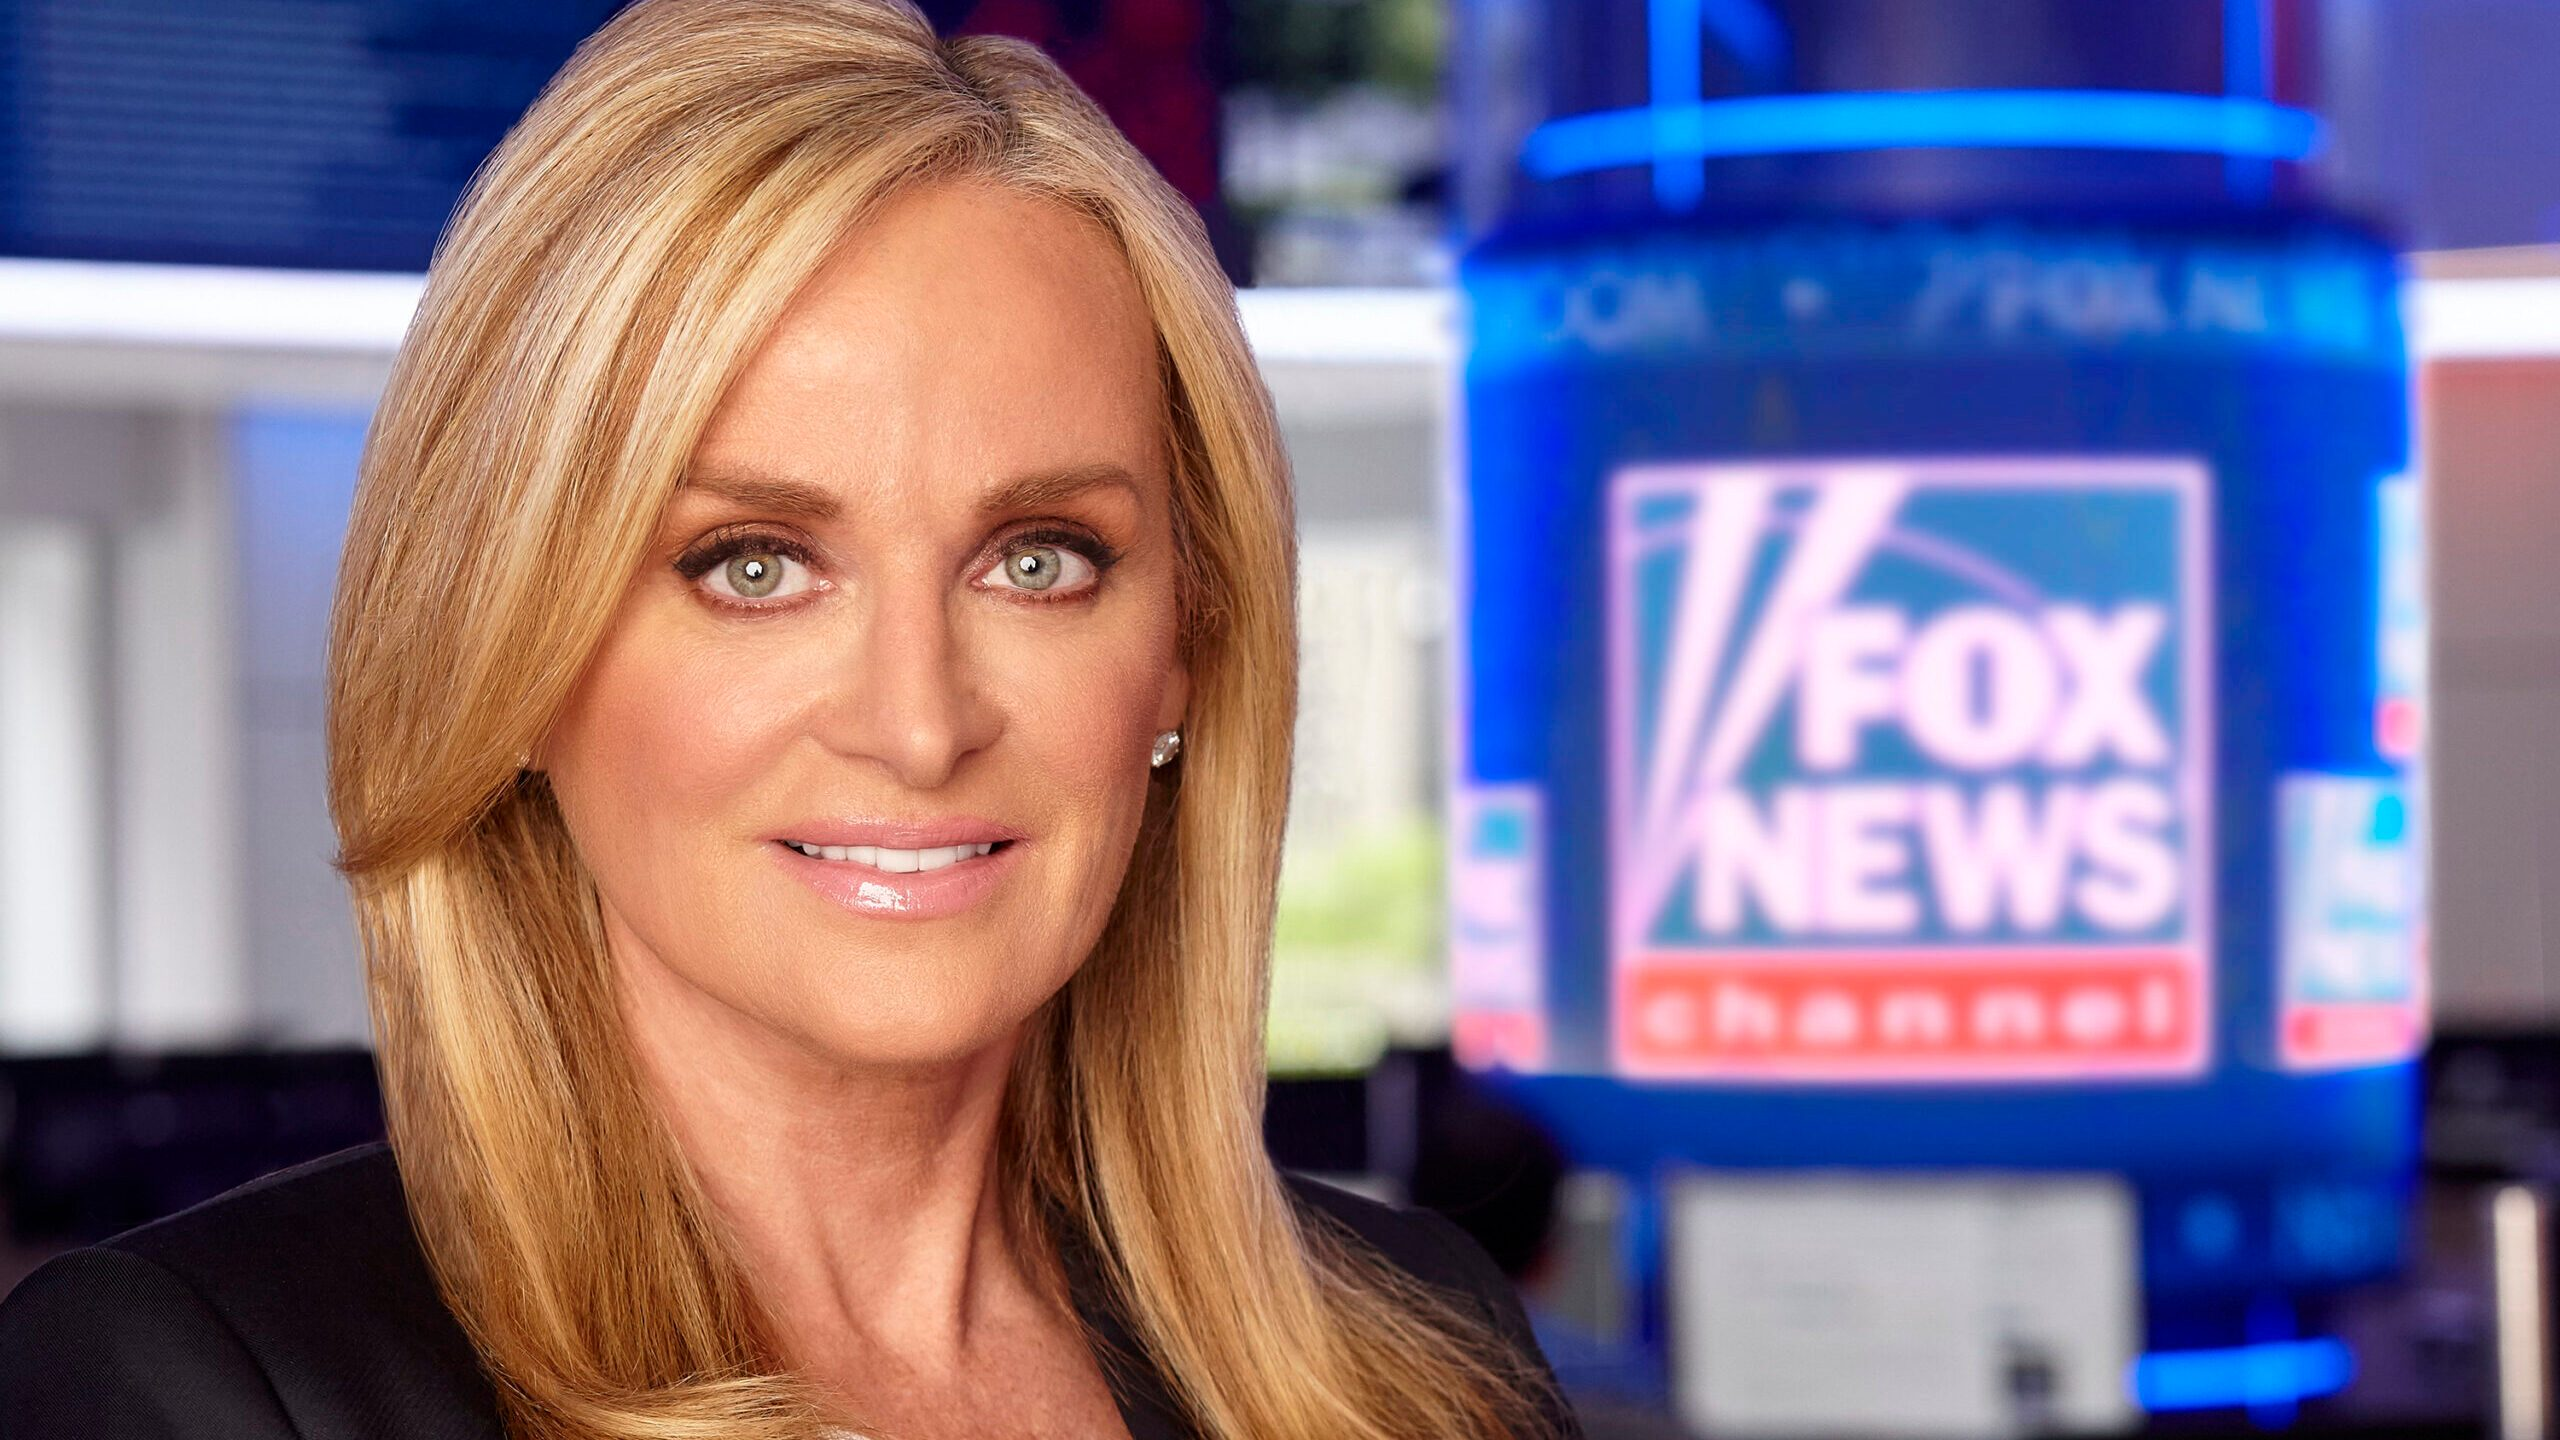 Fox News Leader Signs New Contract, No 'Pivot' Planned